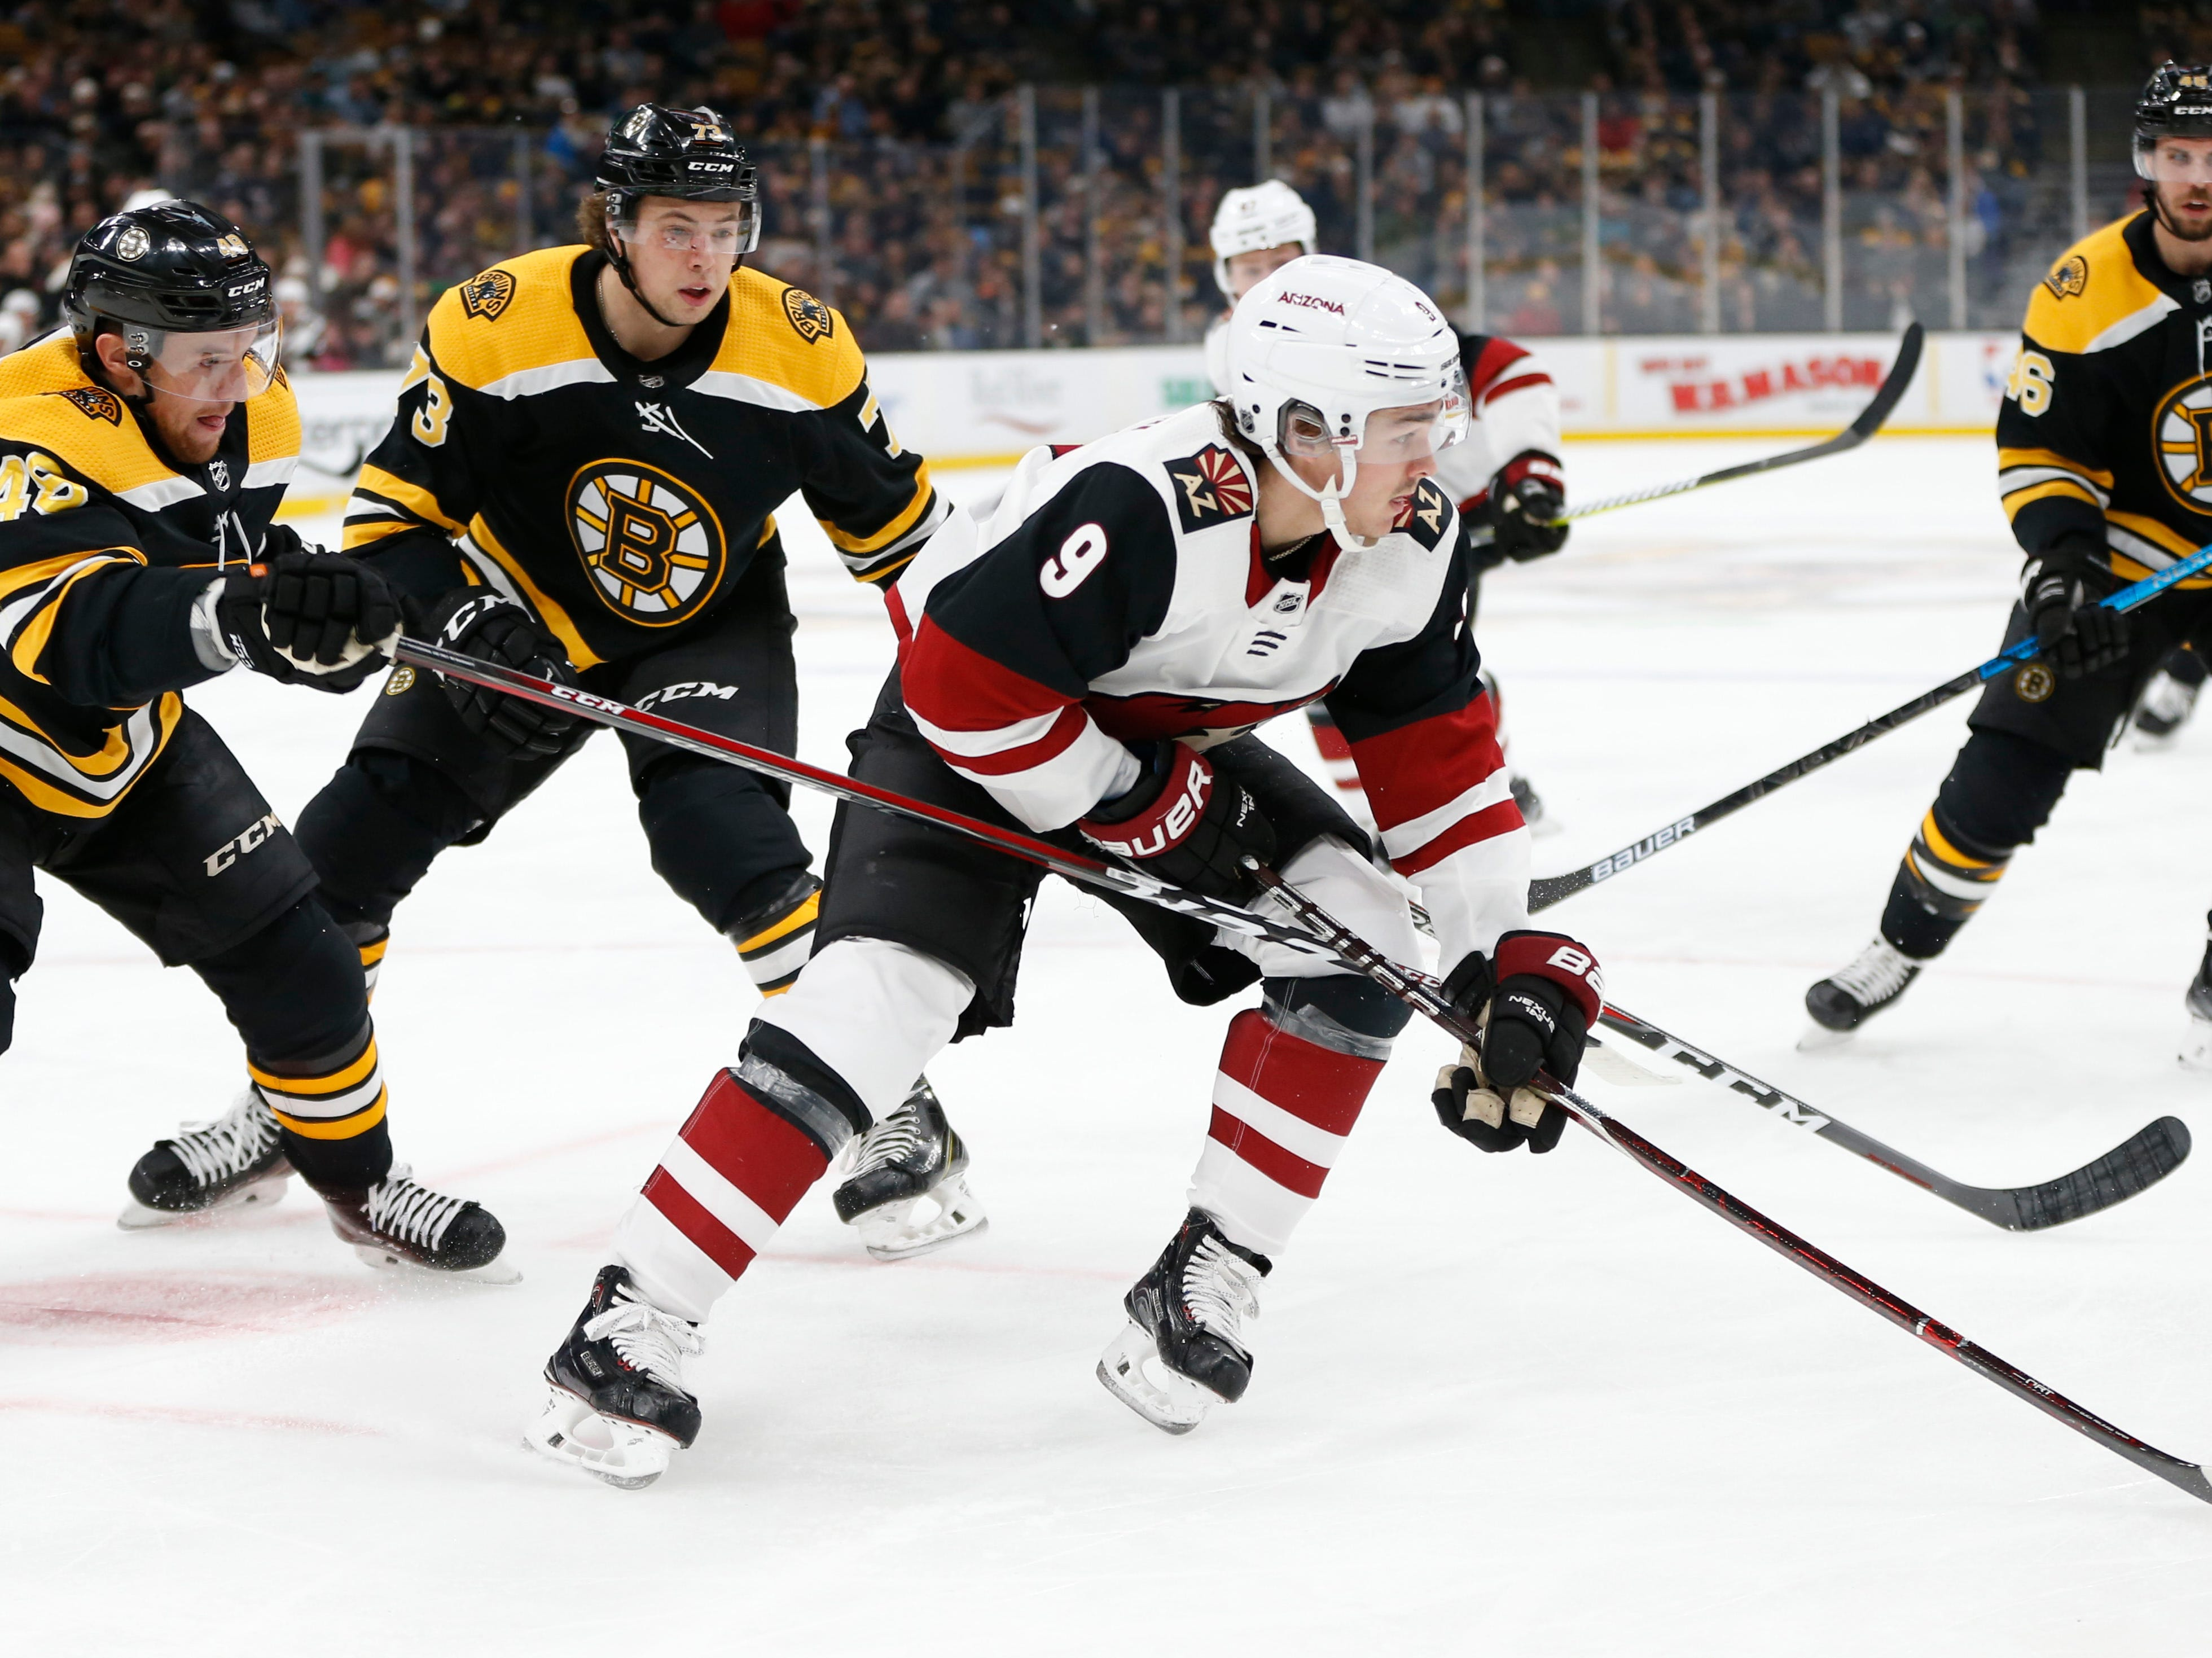 Dec 11, 2018; Boston, MA, USA; Arizona Coyotes center Clayton Keller (9) is defended by Boston Bruins defenseman Matt Grzelcyk (48) and defenseman Charlie McAvoy (73) during the first period at TD Garden. Mandatory Credit: Greg M. Cooper-USA TODAY Sports